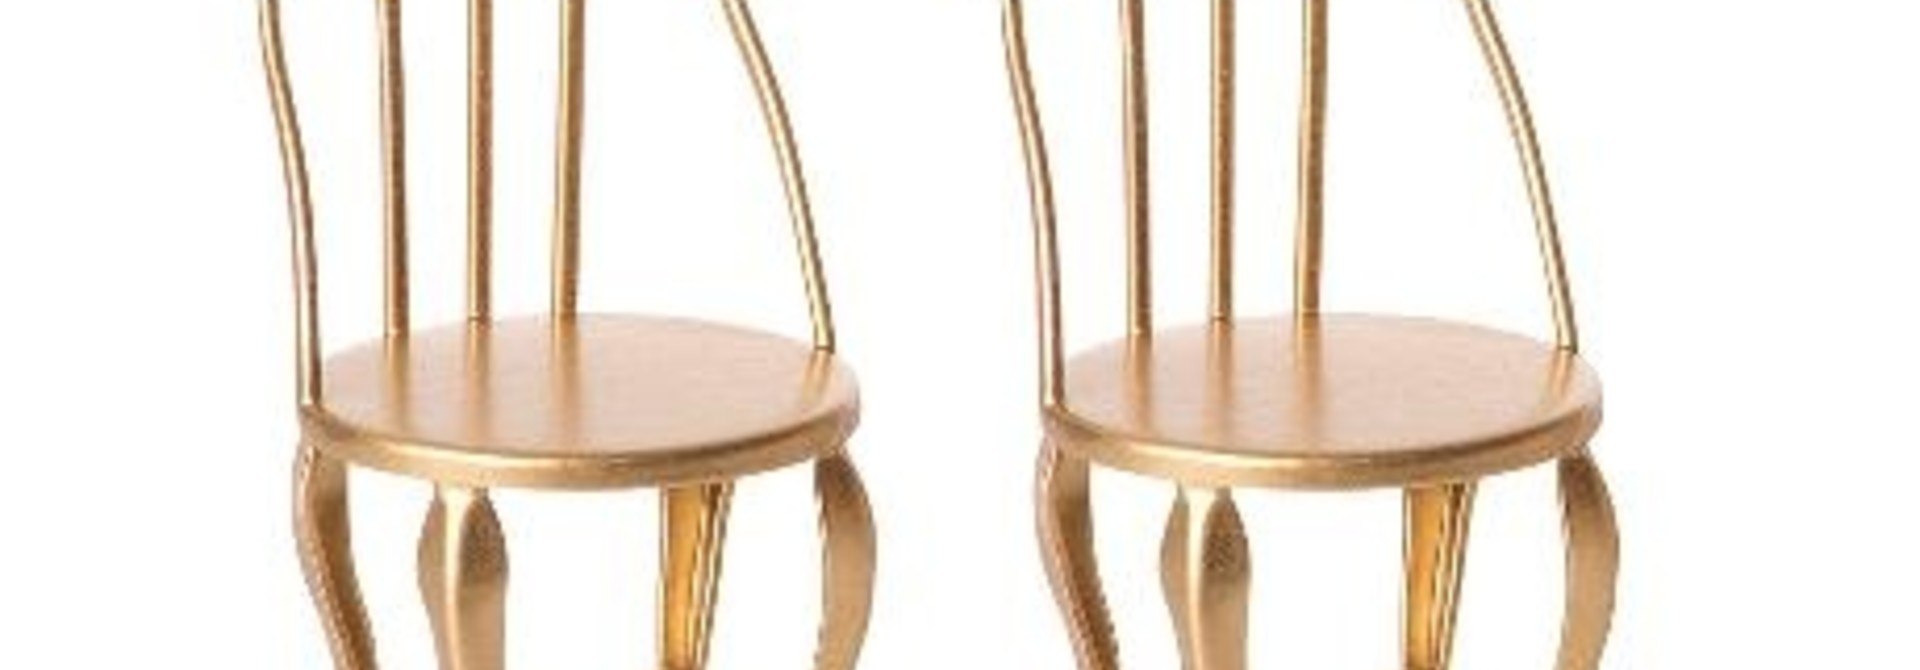 Vintage Chair Micro - Gold - 2 Pack